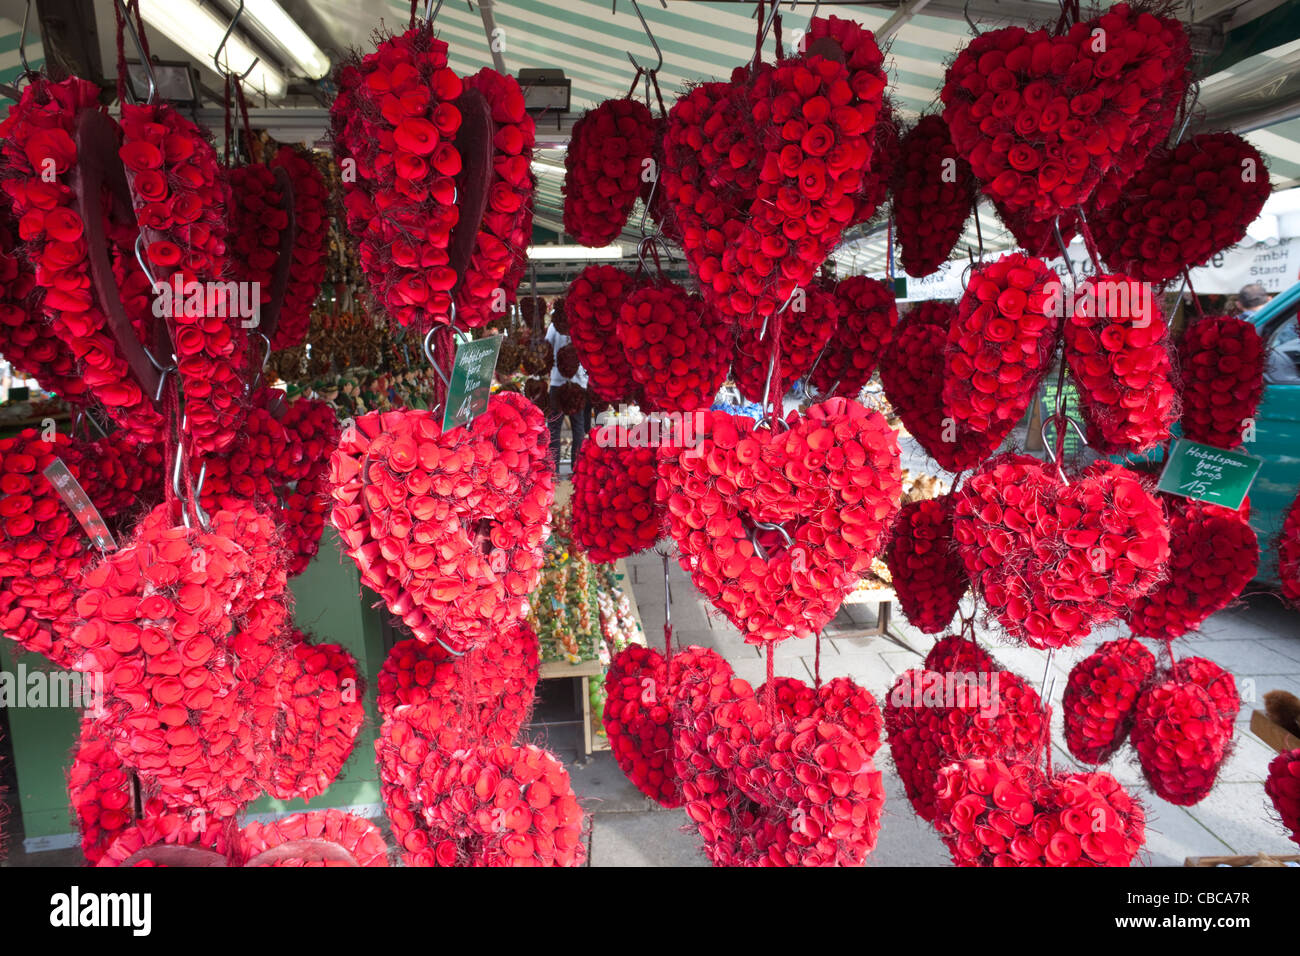 Germany, Bavaria, Munich, Viktualienmarkt, Heart Shaped Floral Display - Stock Image